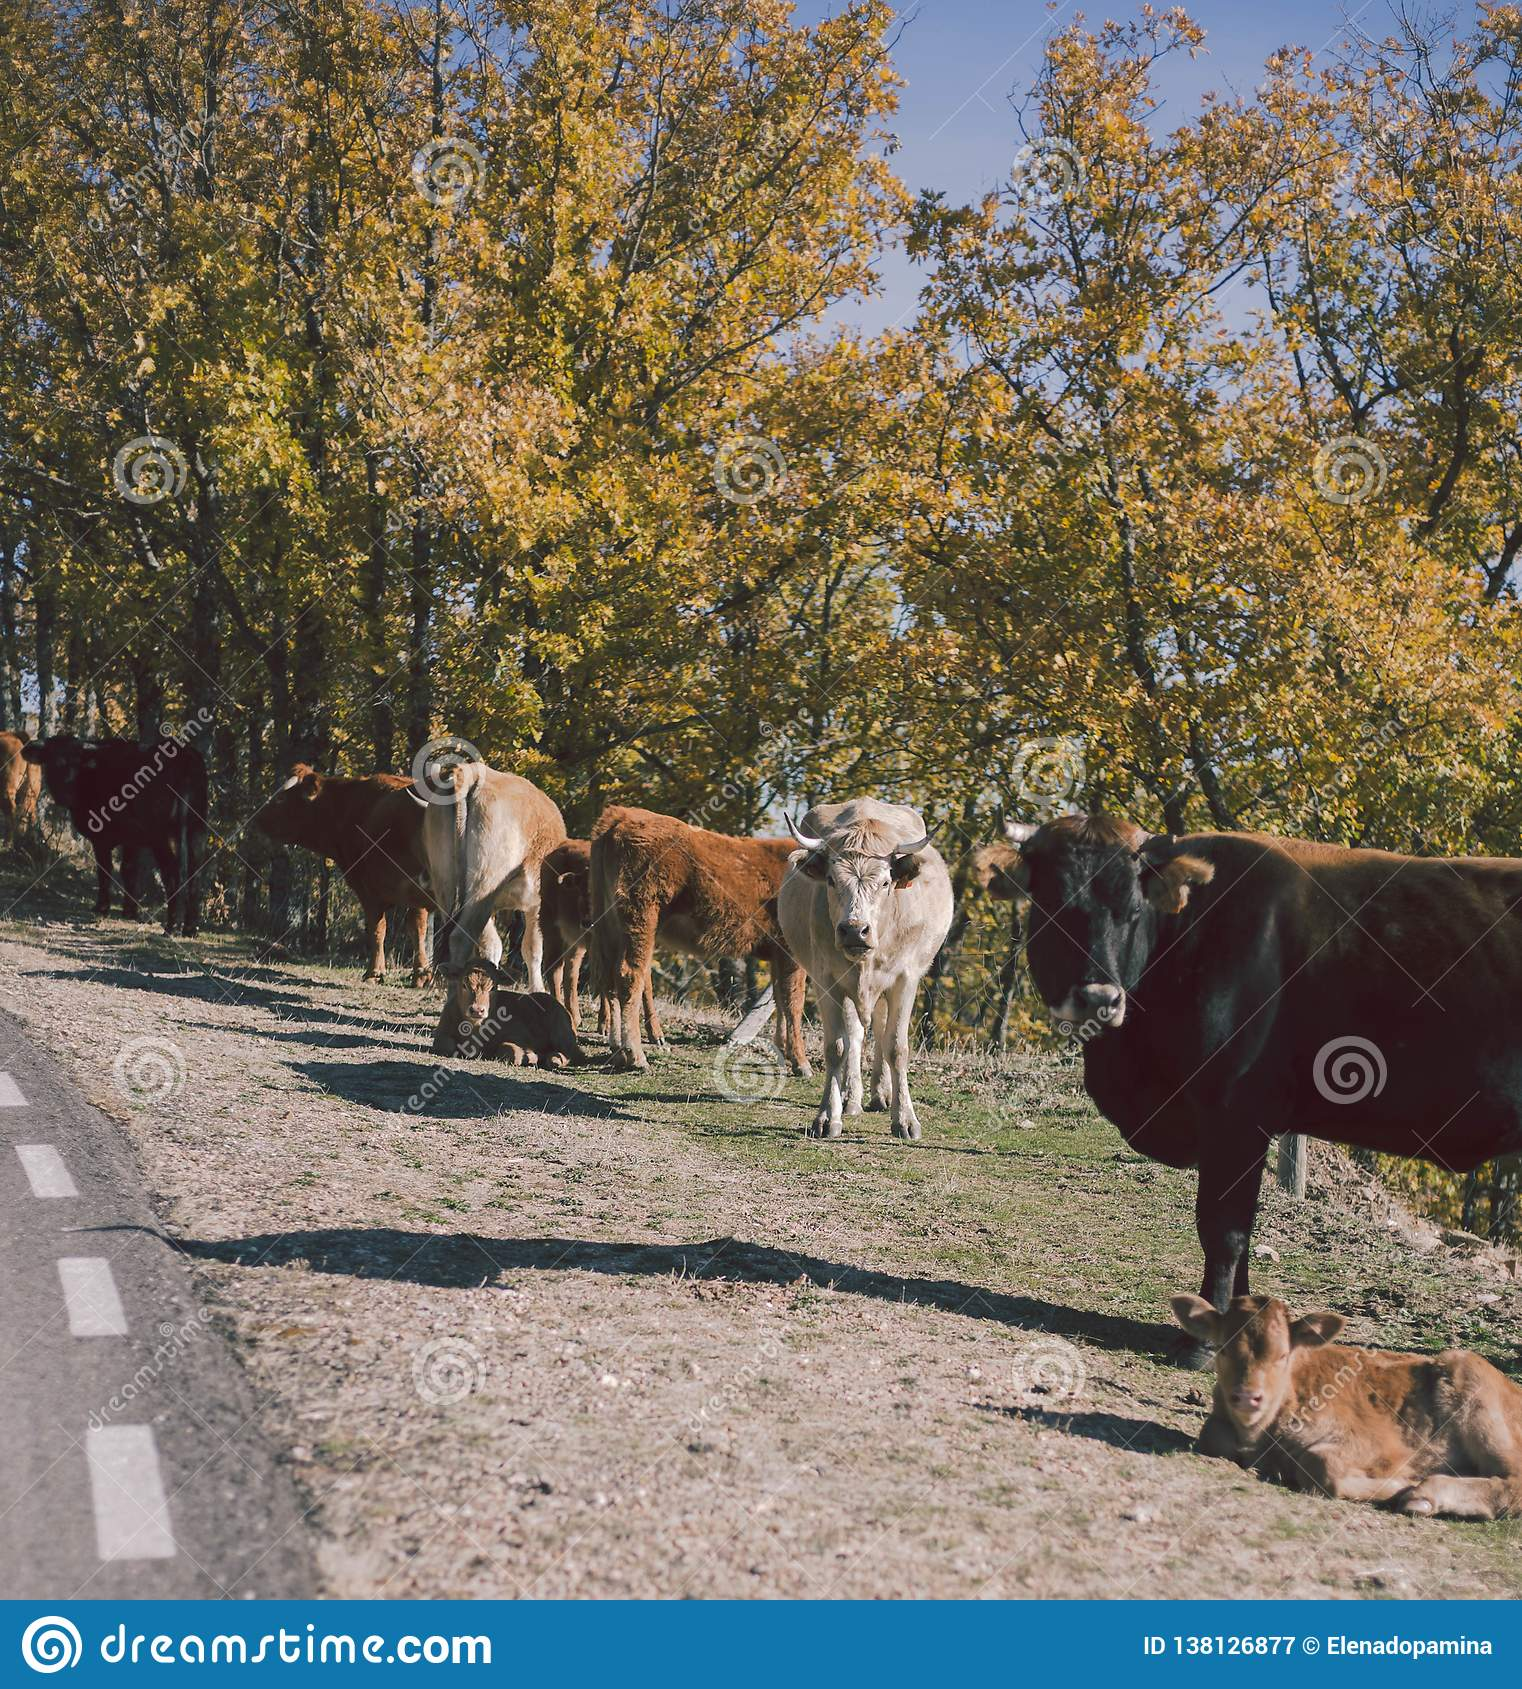 Cows on the road, Castilla la Mancha, Spain